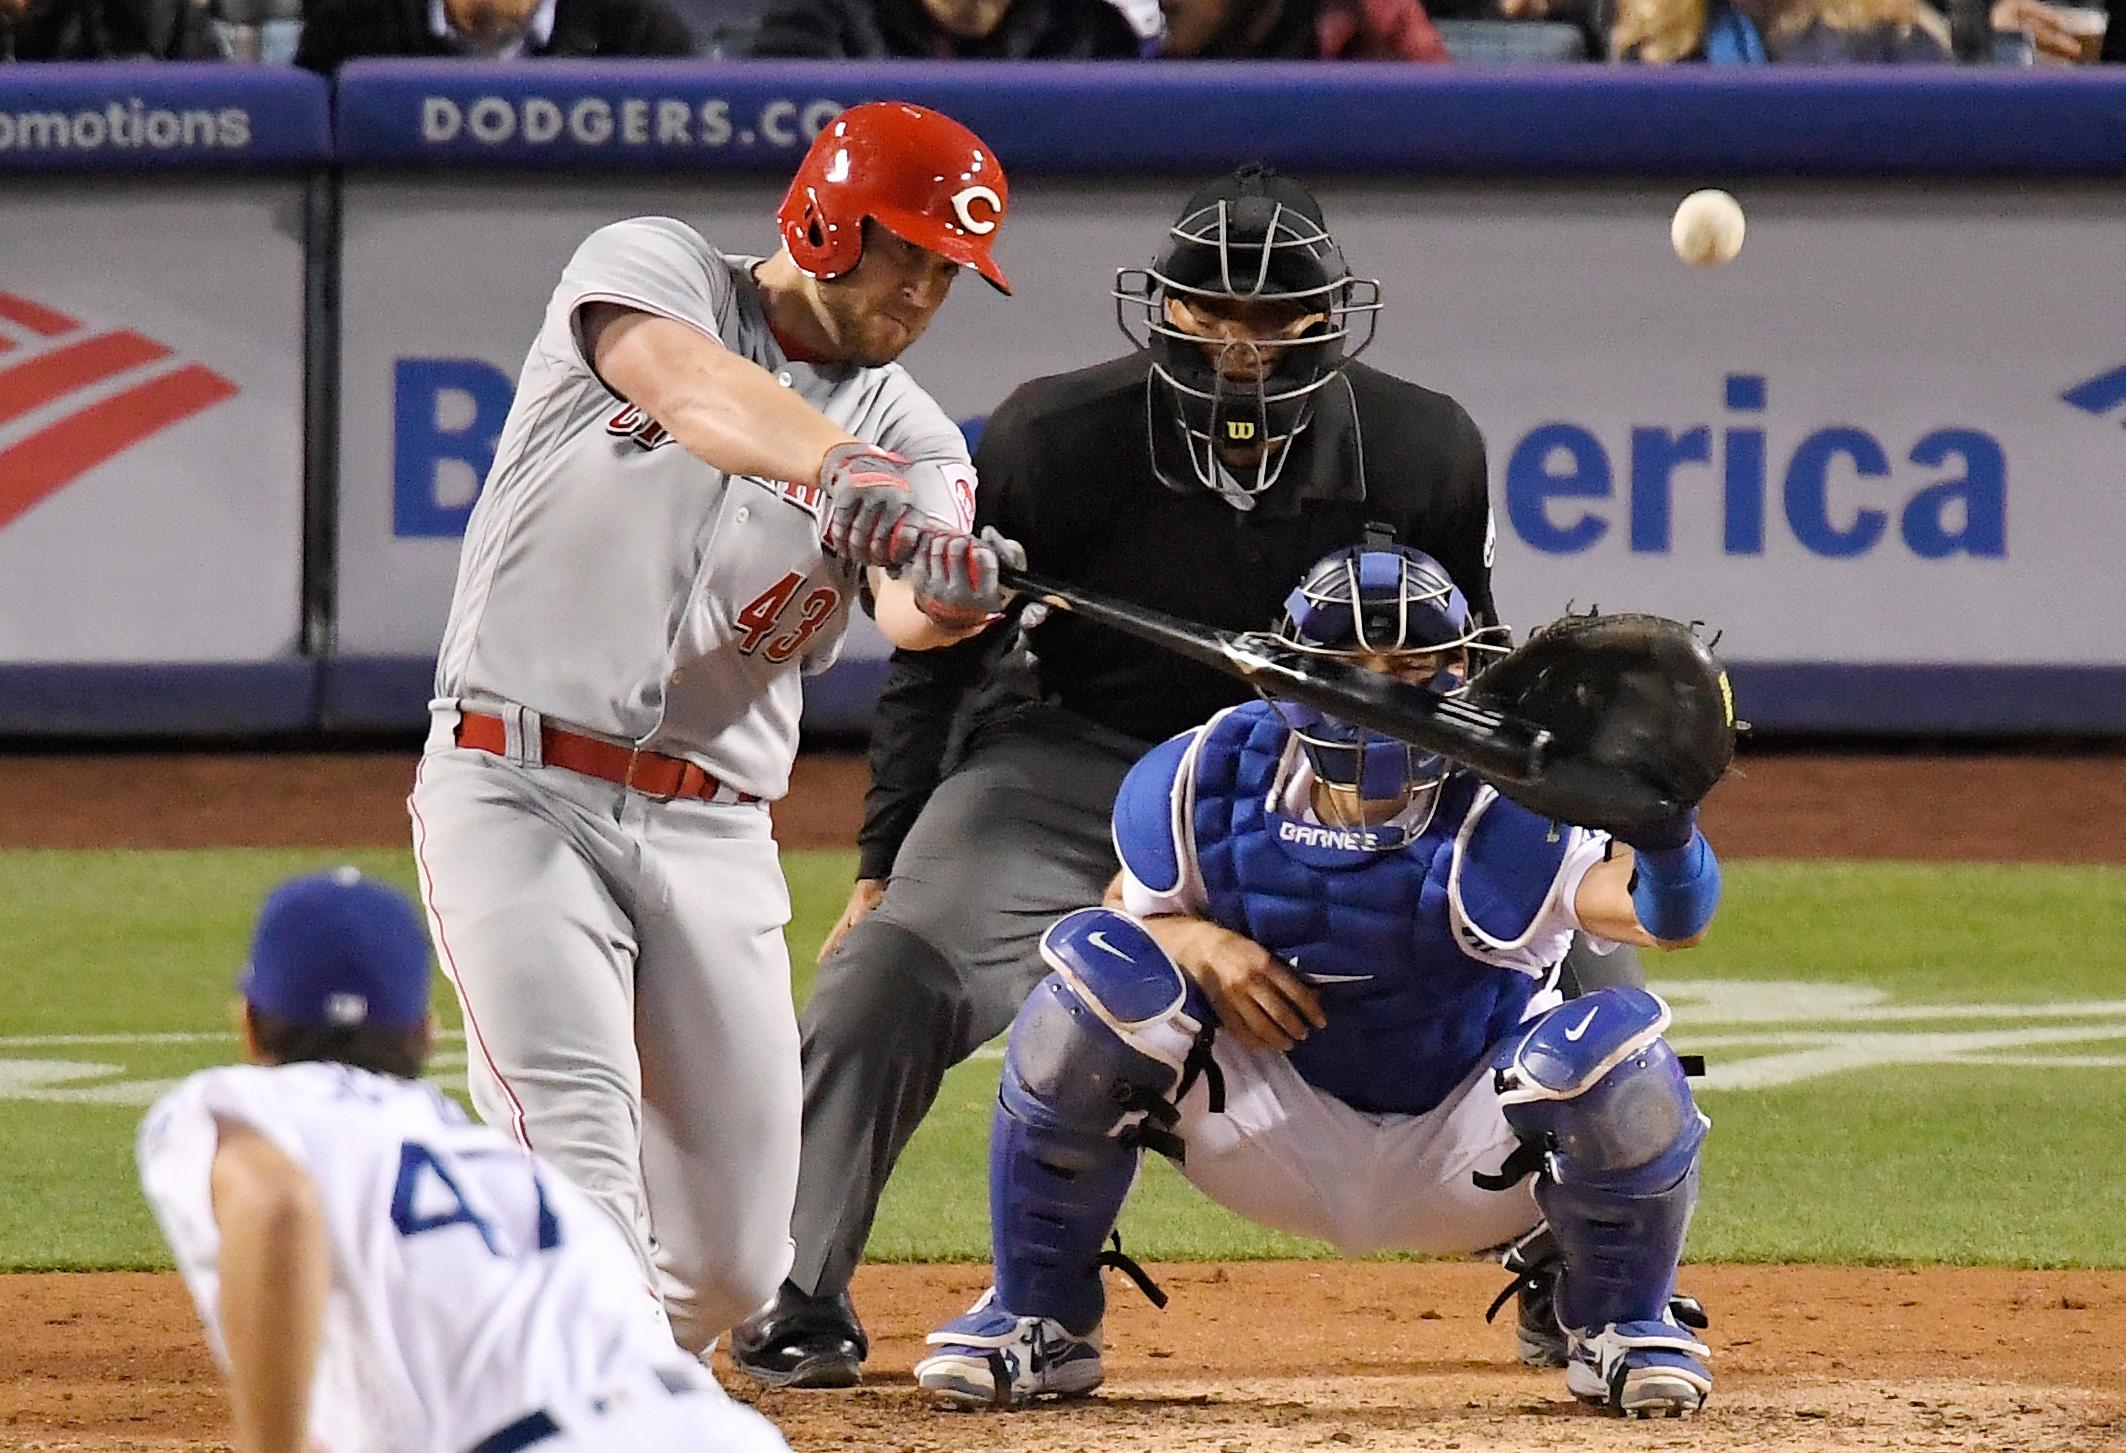 Cincinnati Reds' Scott Schebler hits a three-run home run off Los Angeles Dodgers relief pitcher JT Chargois, front, during the sixth inning of a baseball game Saturday, May 12, 2018, in Los Angeles. (AP Photo/Mark J. Terrill)